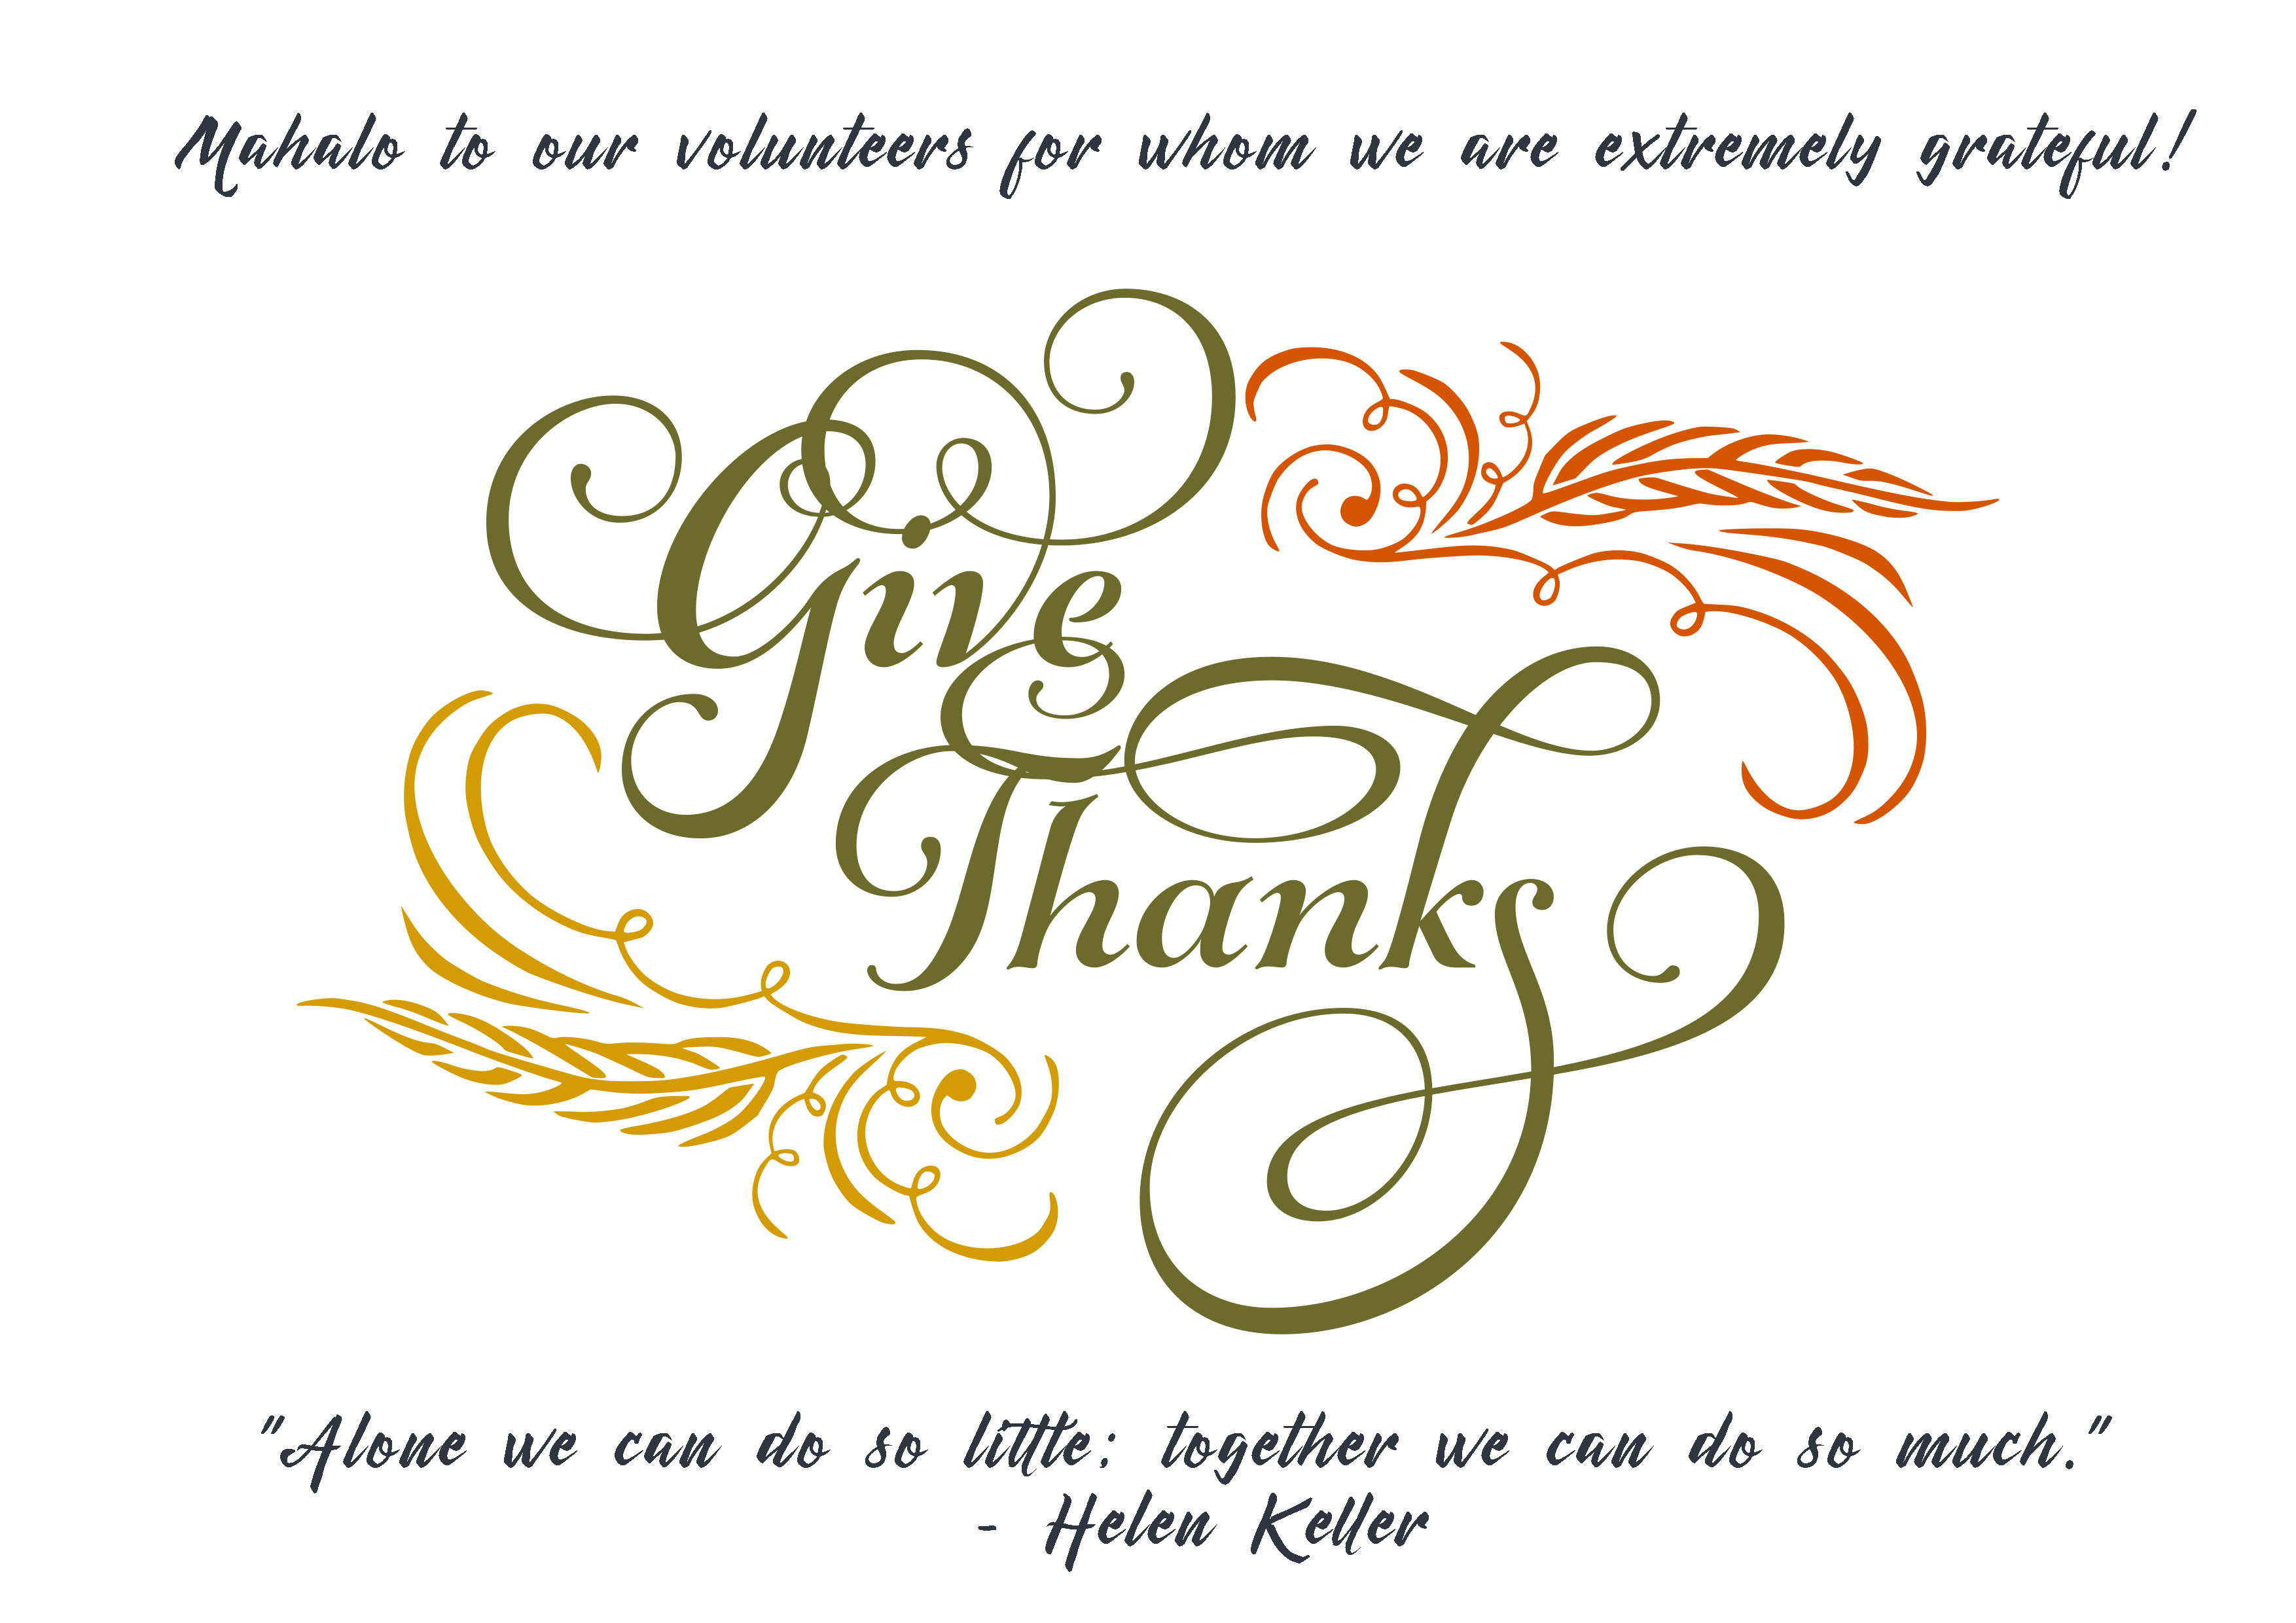 Giving Thanks graphic. Mahalo to our volunteers for whom we are extremely grateful!